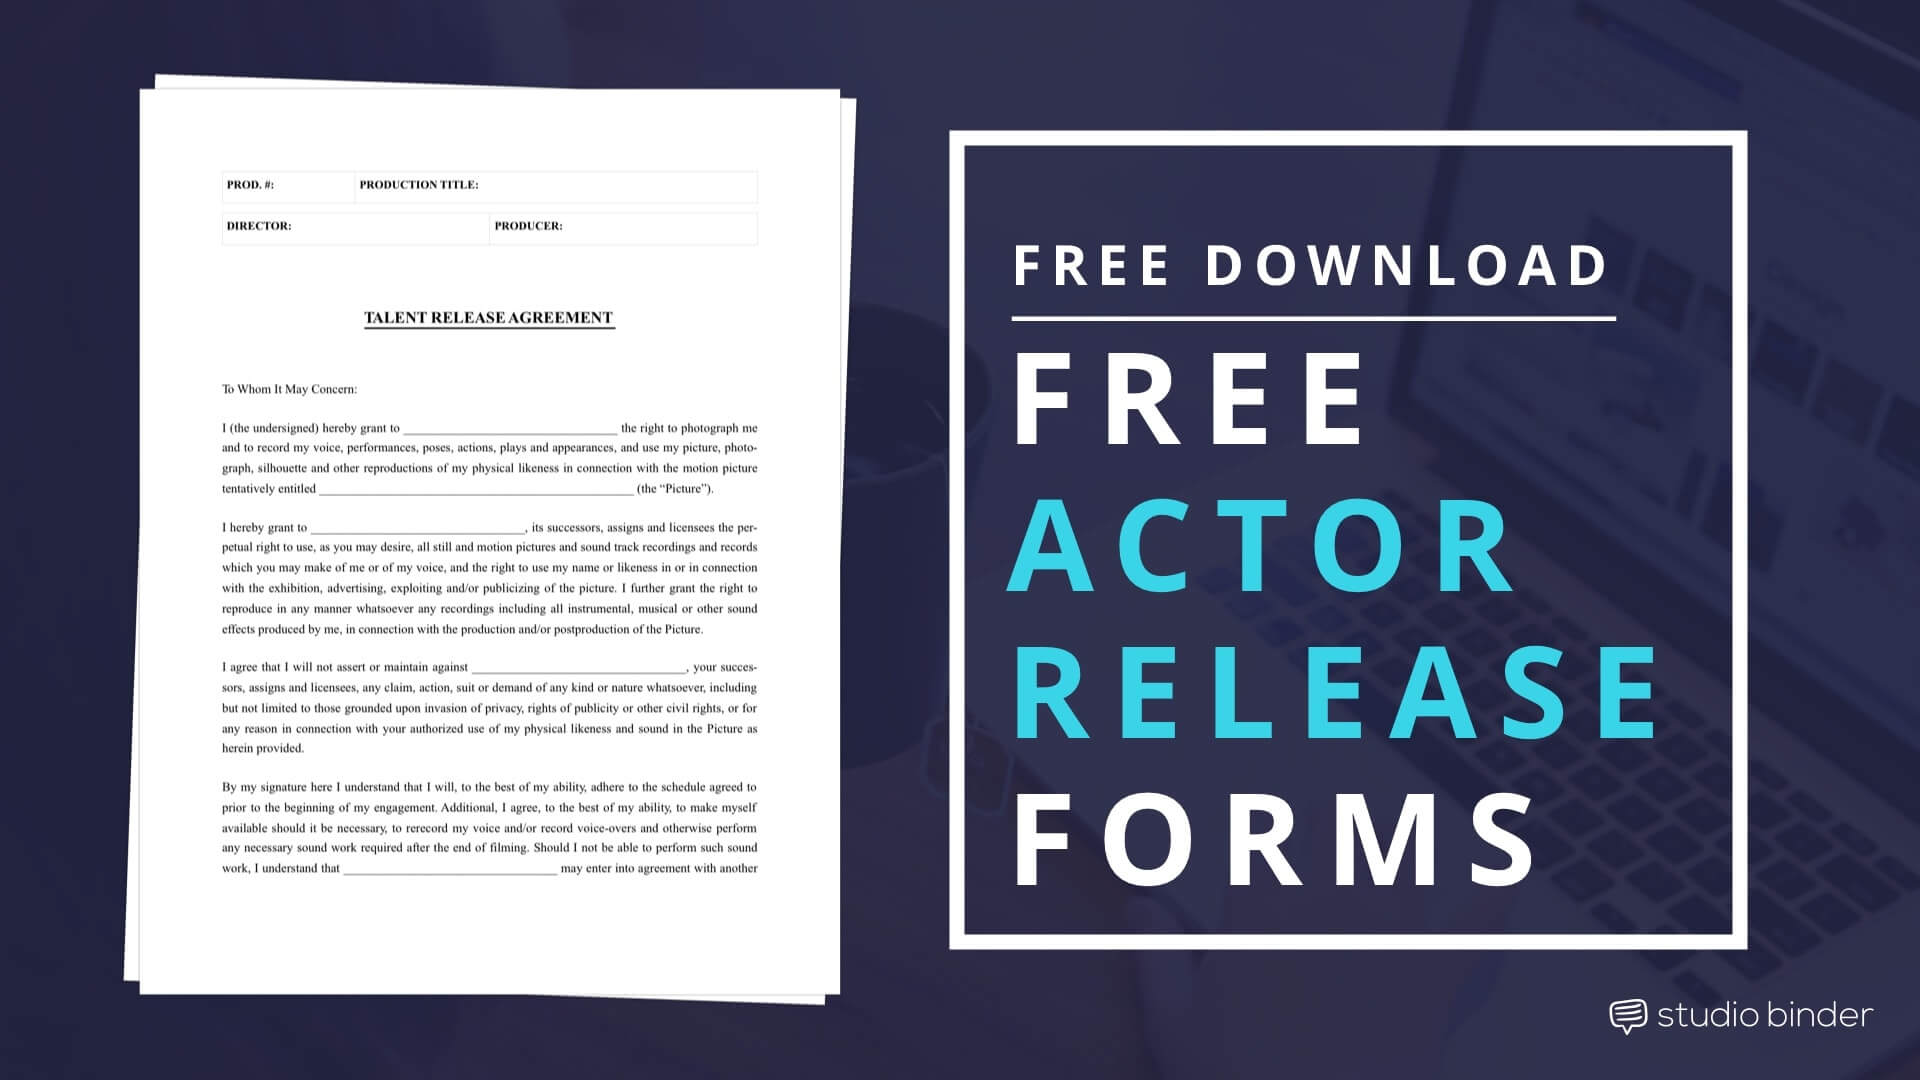 Download your free filmmaking production documents and templates falaconquin